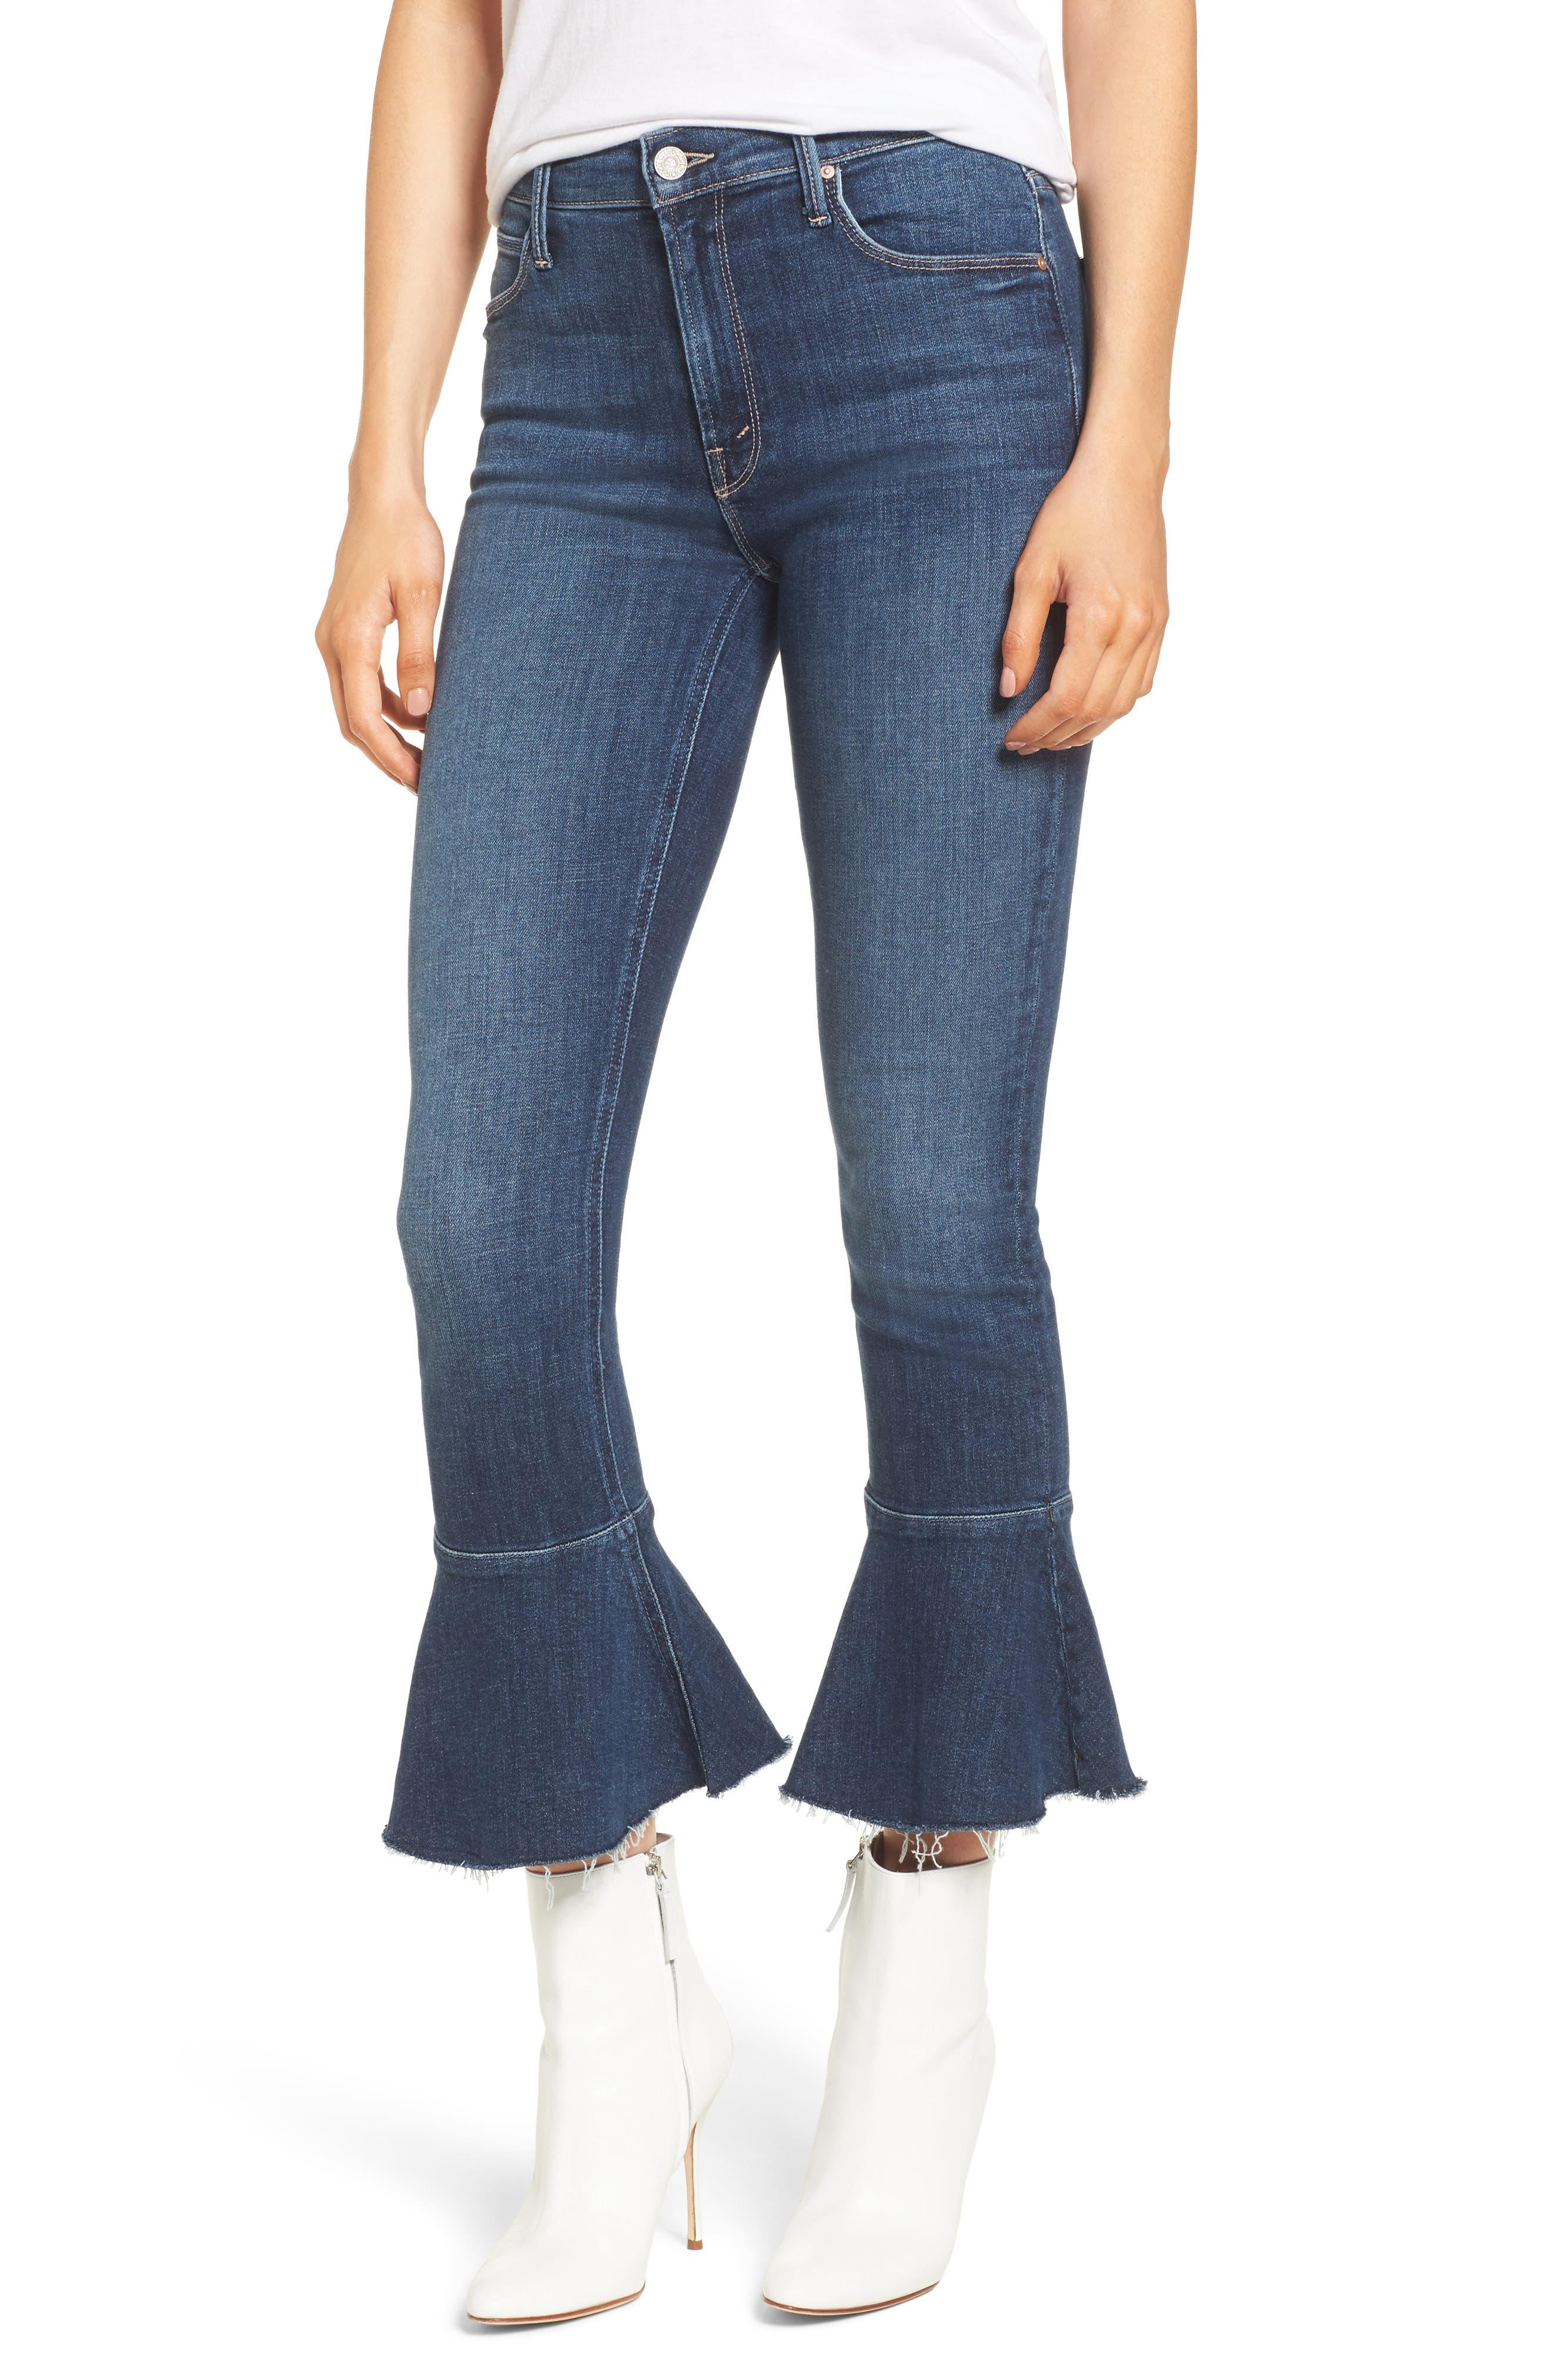 Alternate Image 1 Selected - MOTHER The Cha Cha Fray Flare Crop Jeans (Girl Crush)